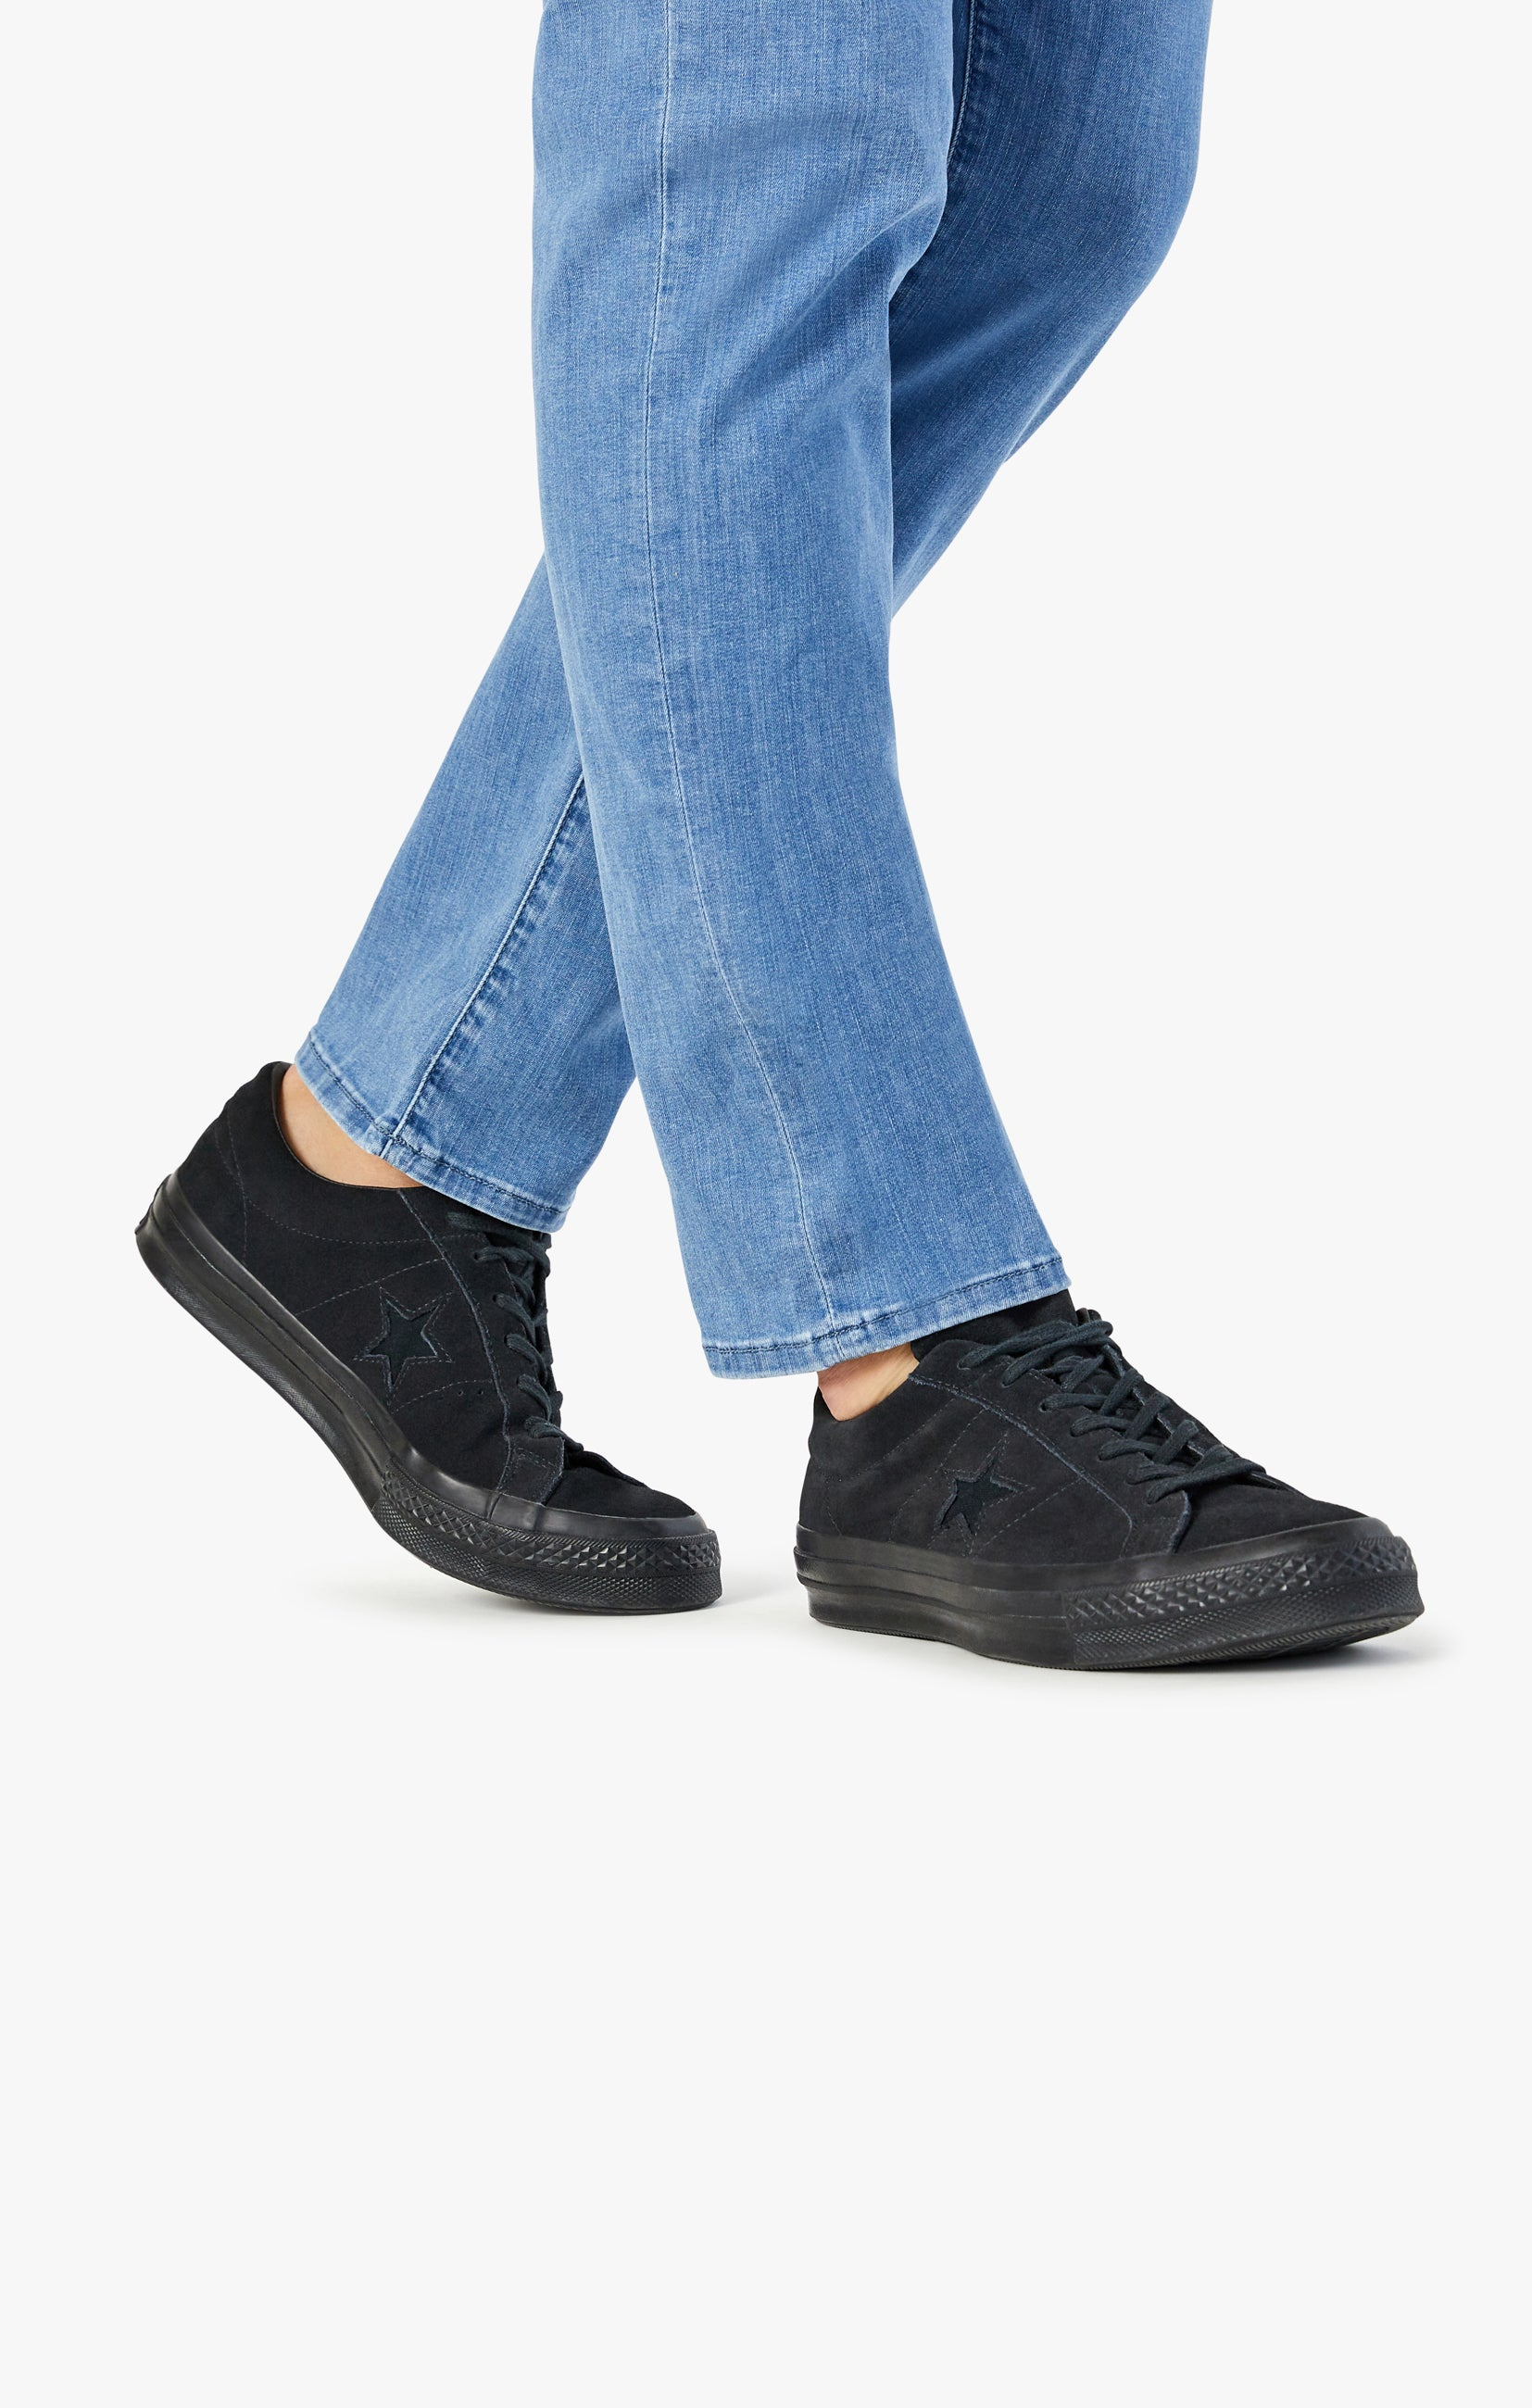 Courage Straight Leg Jeans In Light Kona Image 8